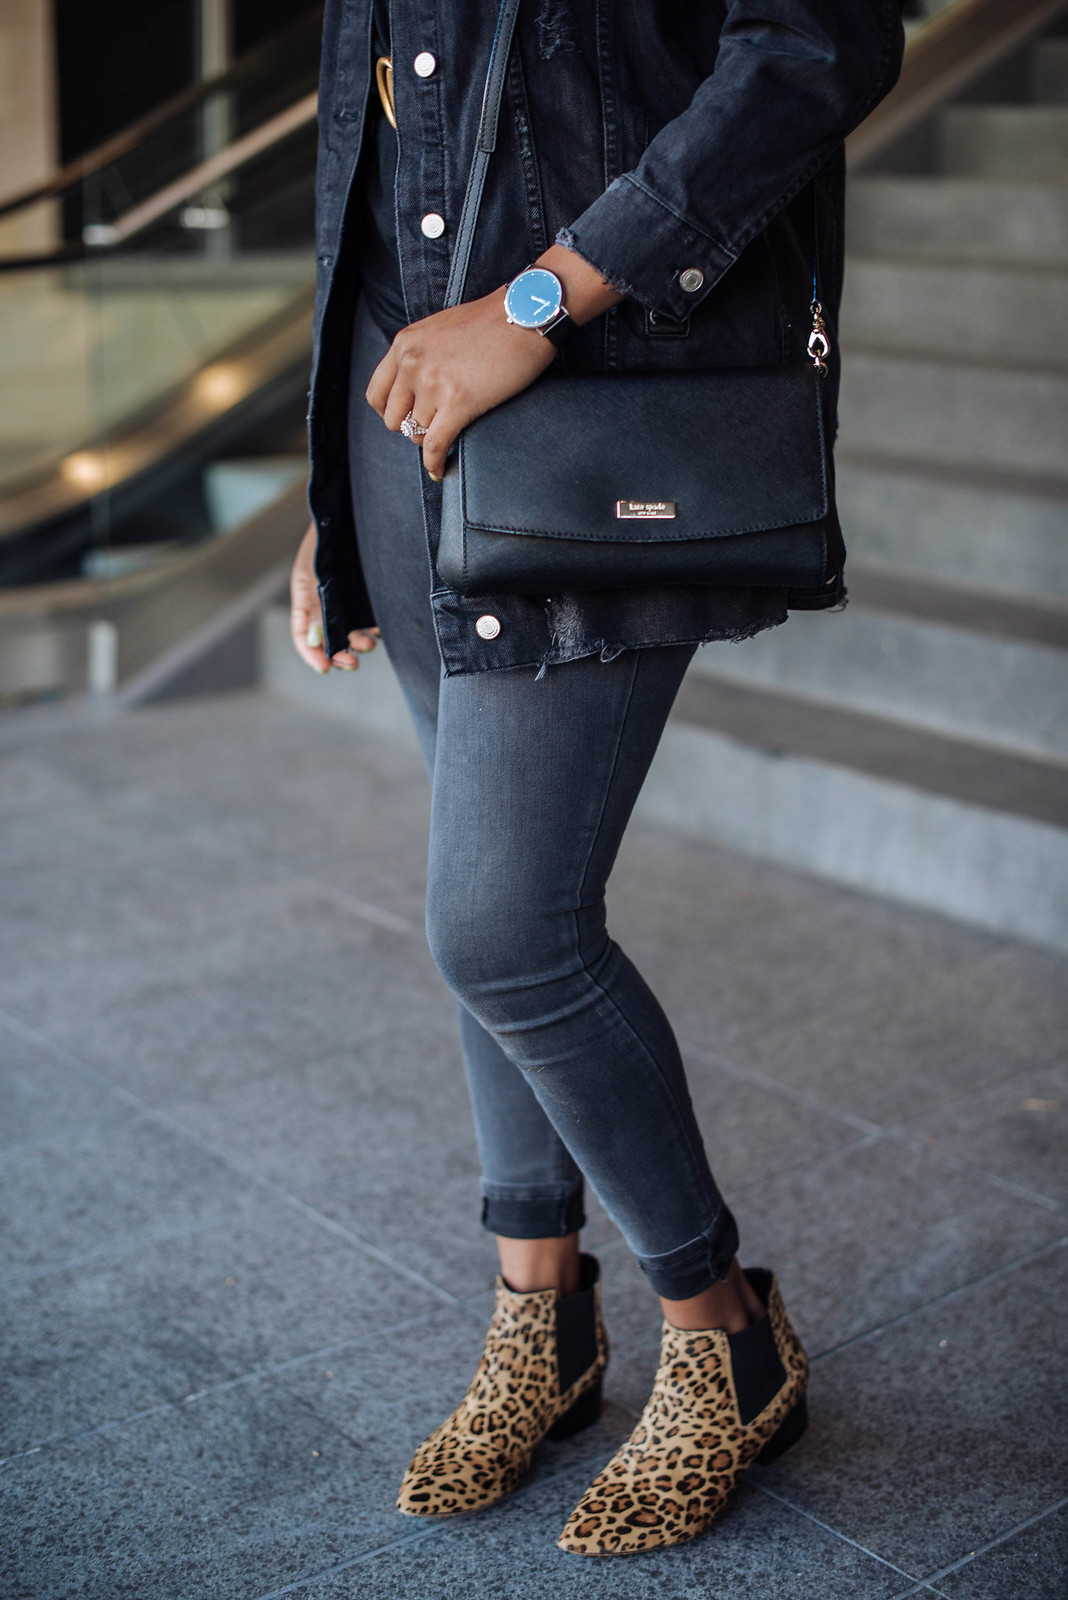 how to style a Kate Spade bag